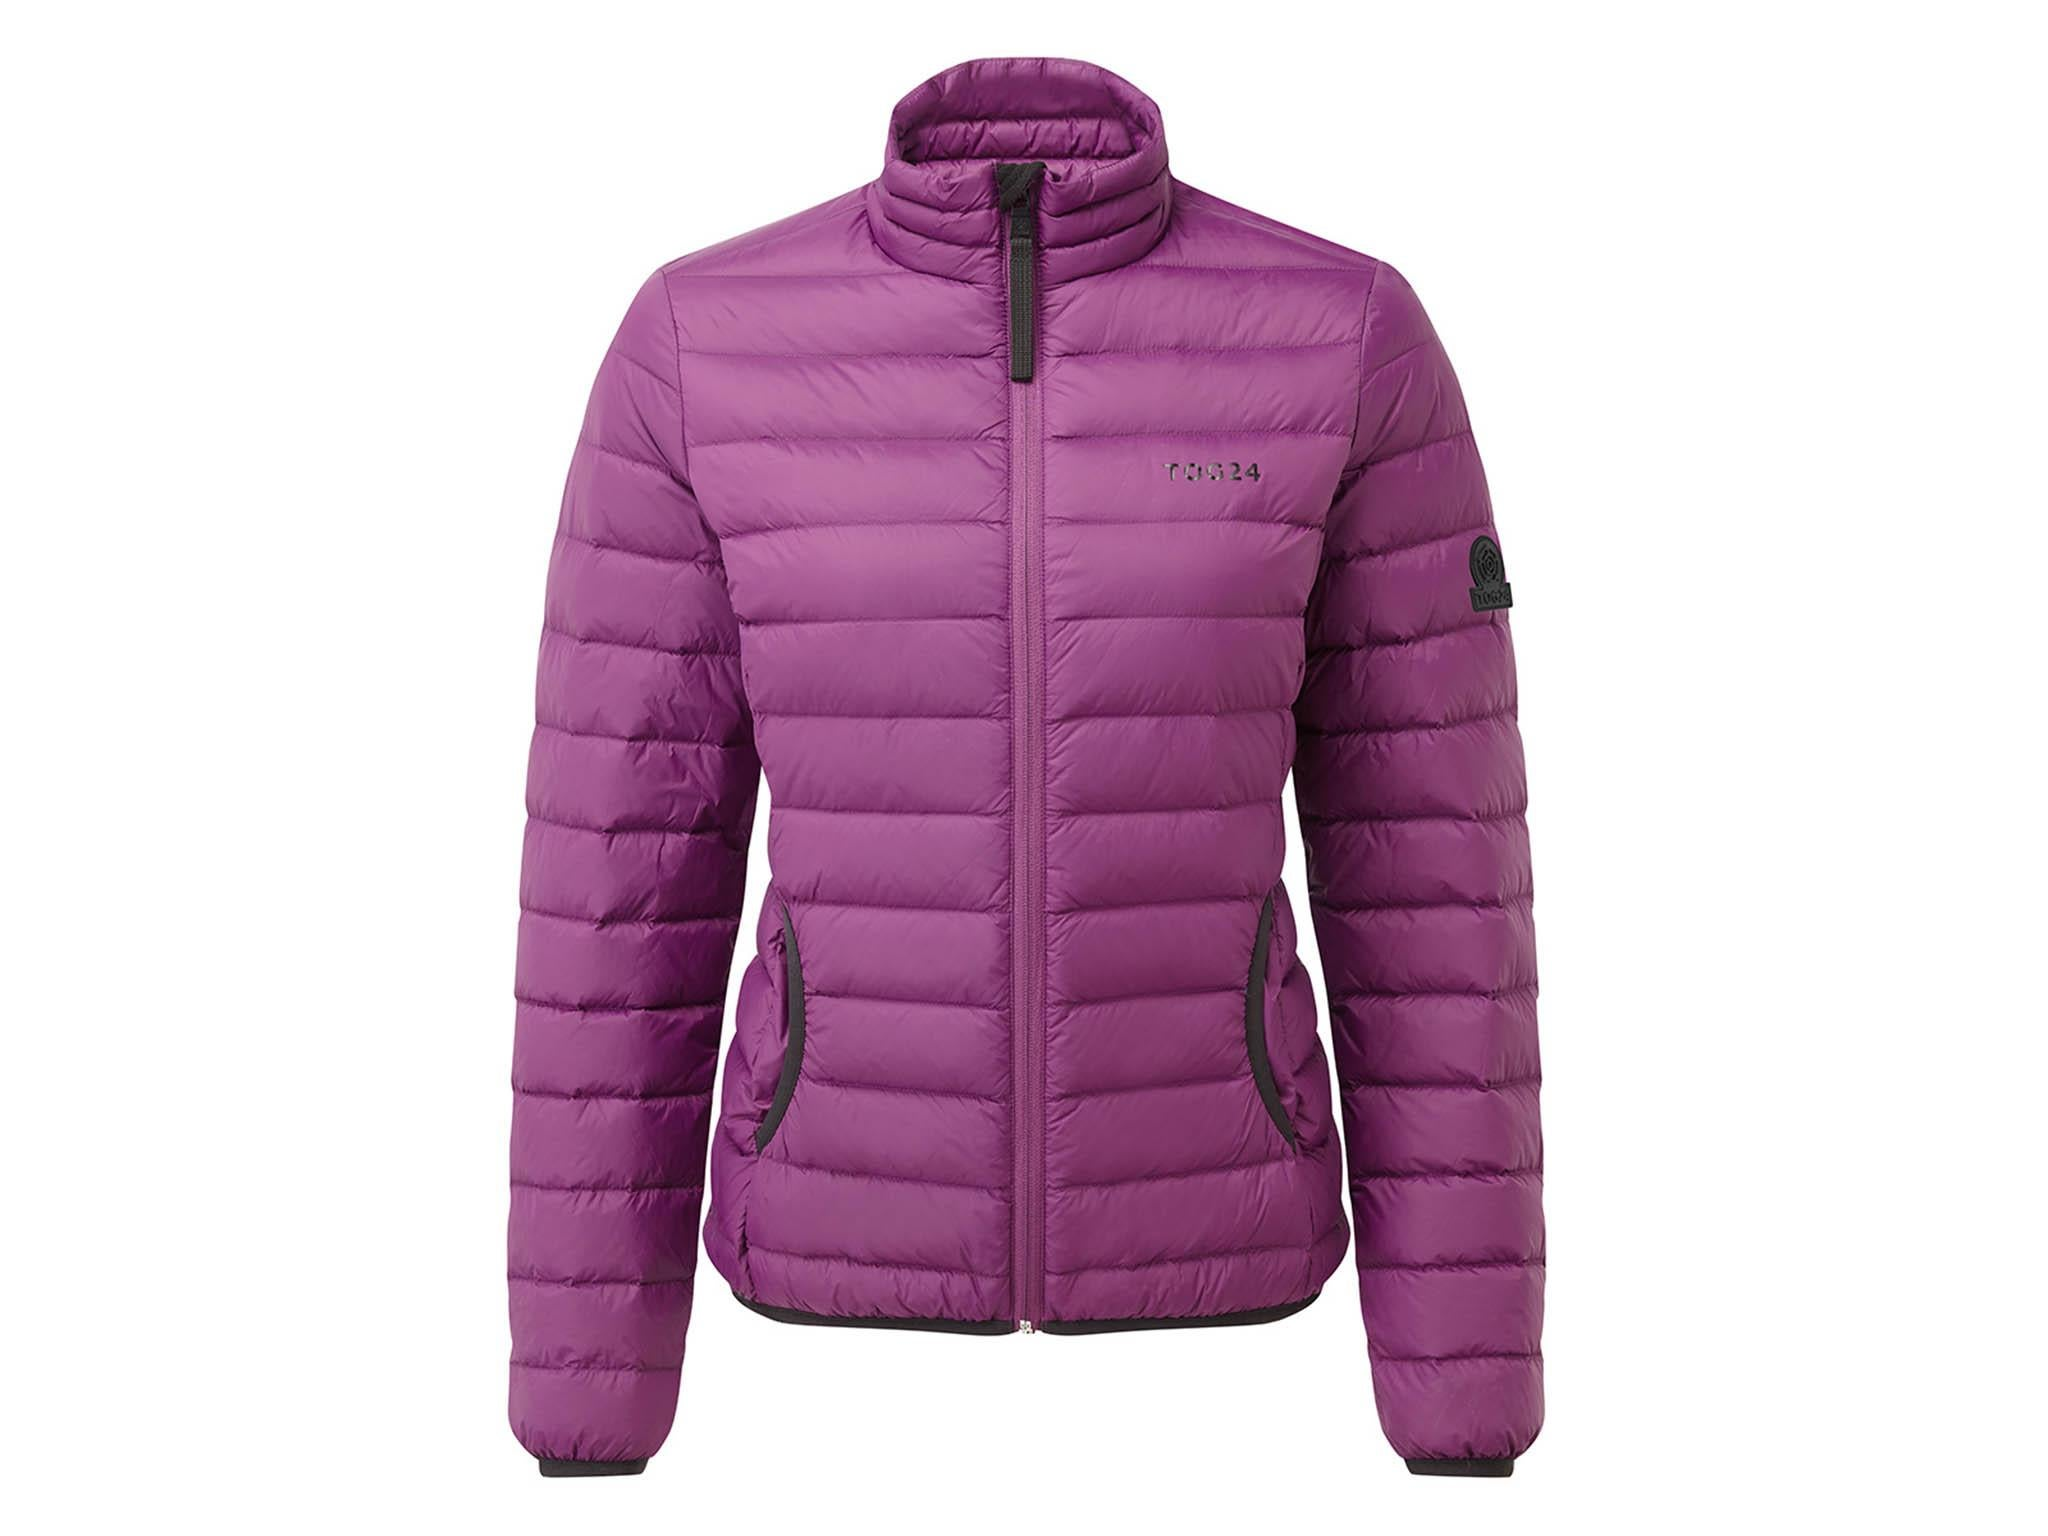 10 best women's puffer and quilted jackets for walking | The